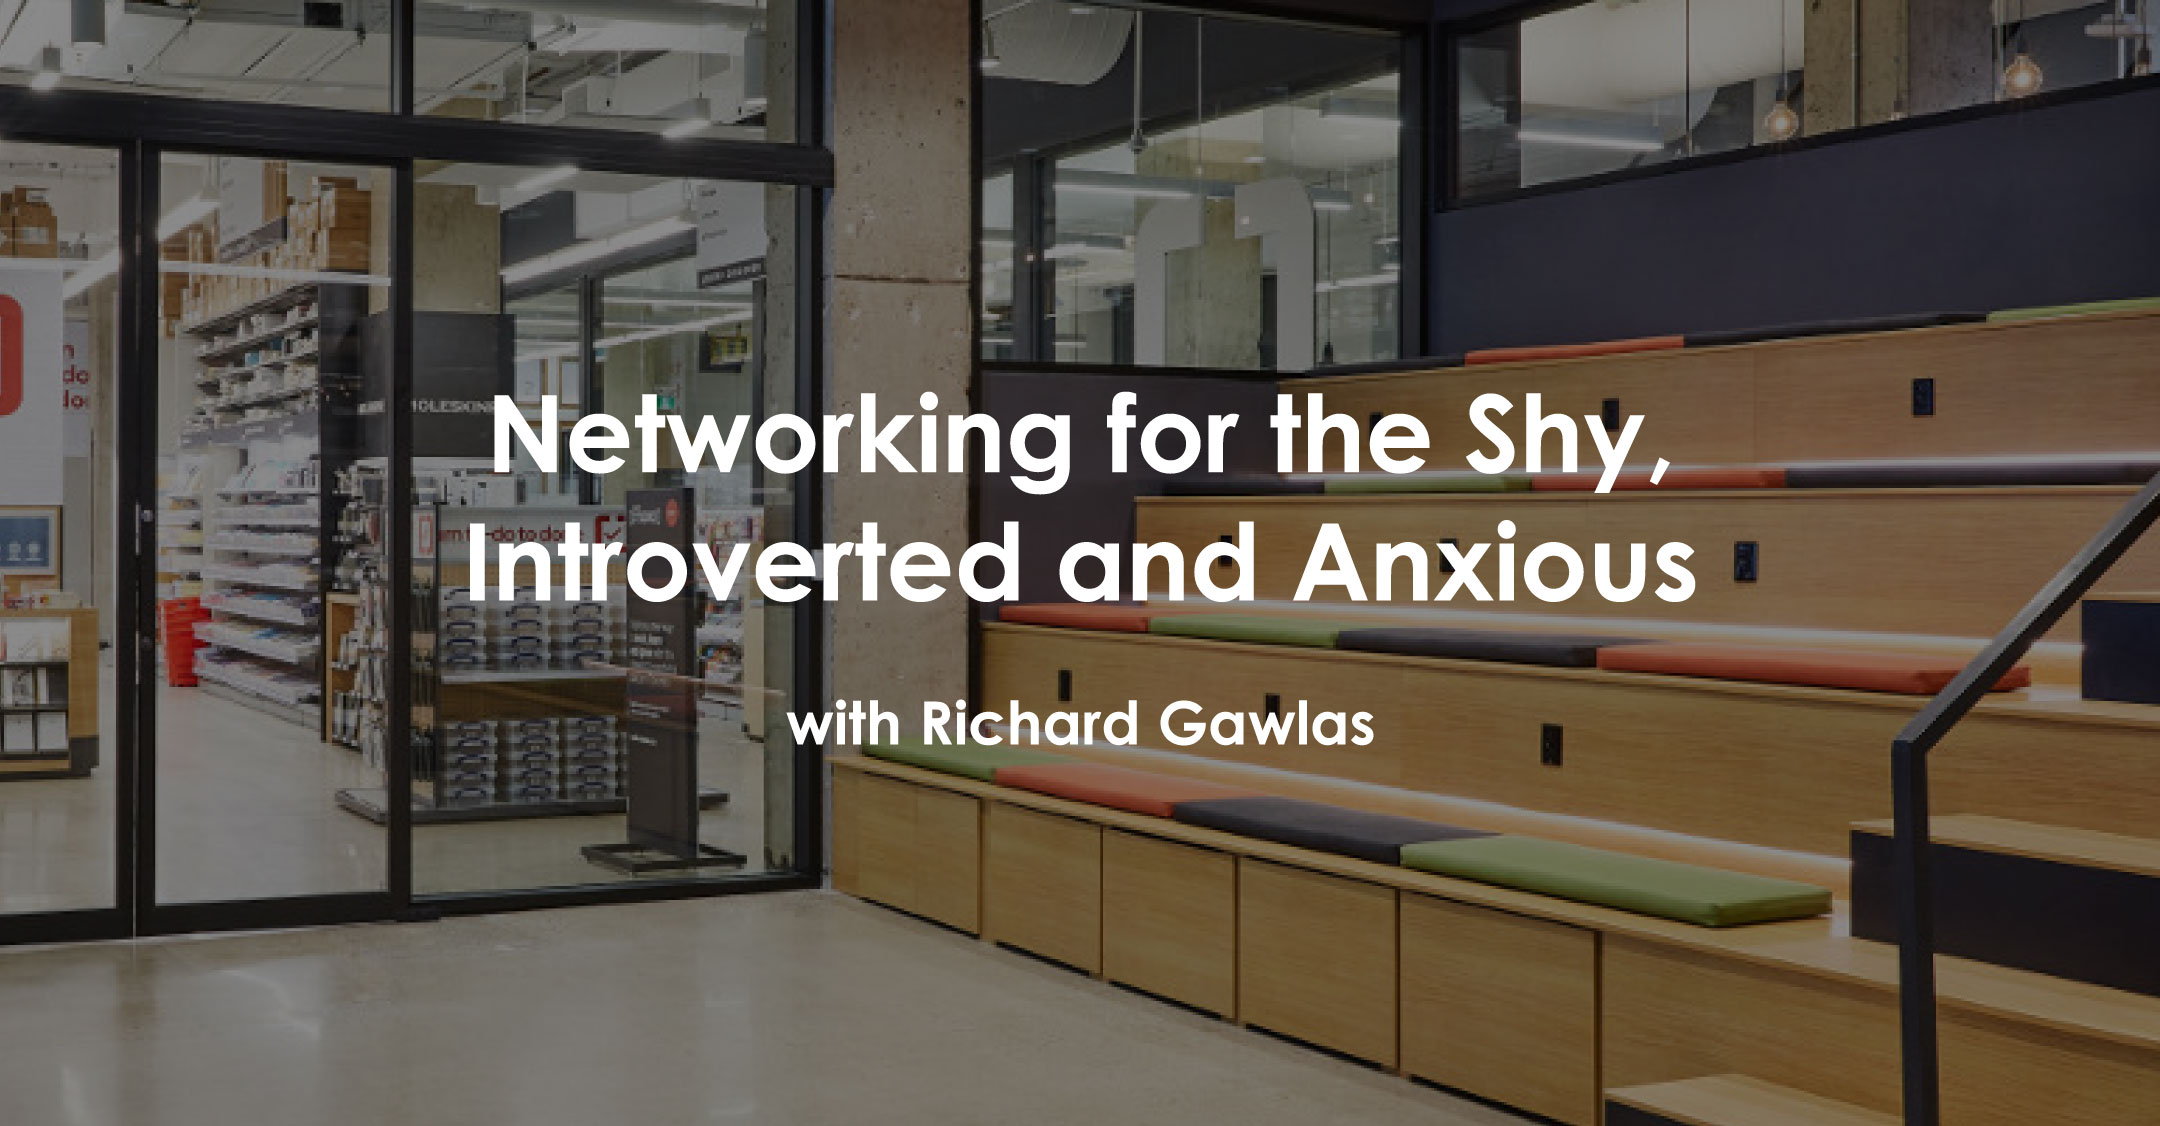 staples_networking_introverted_banner.jpg